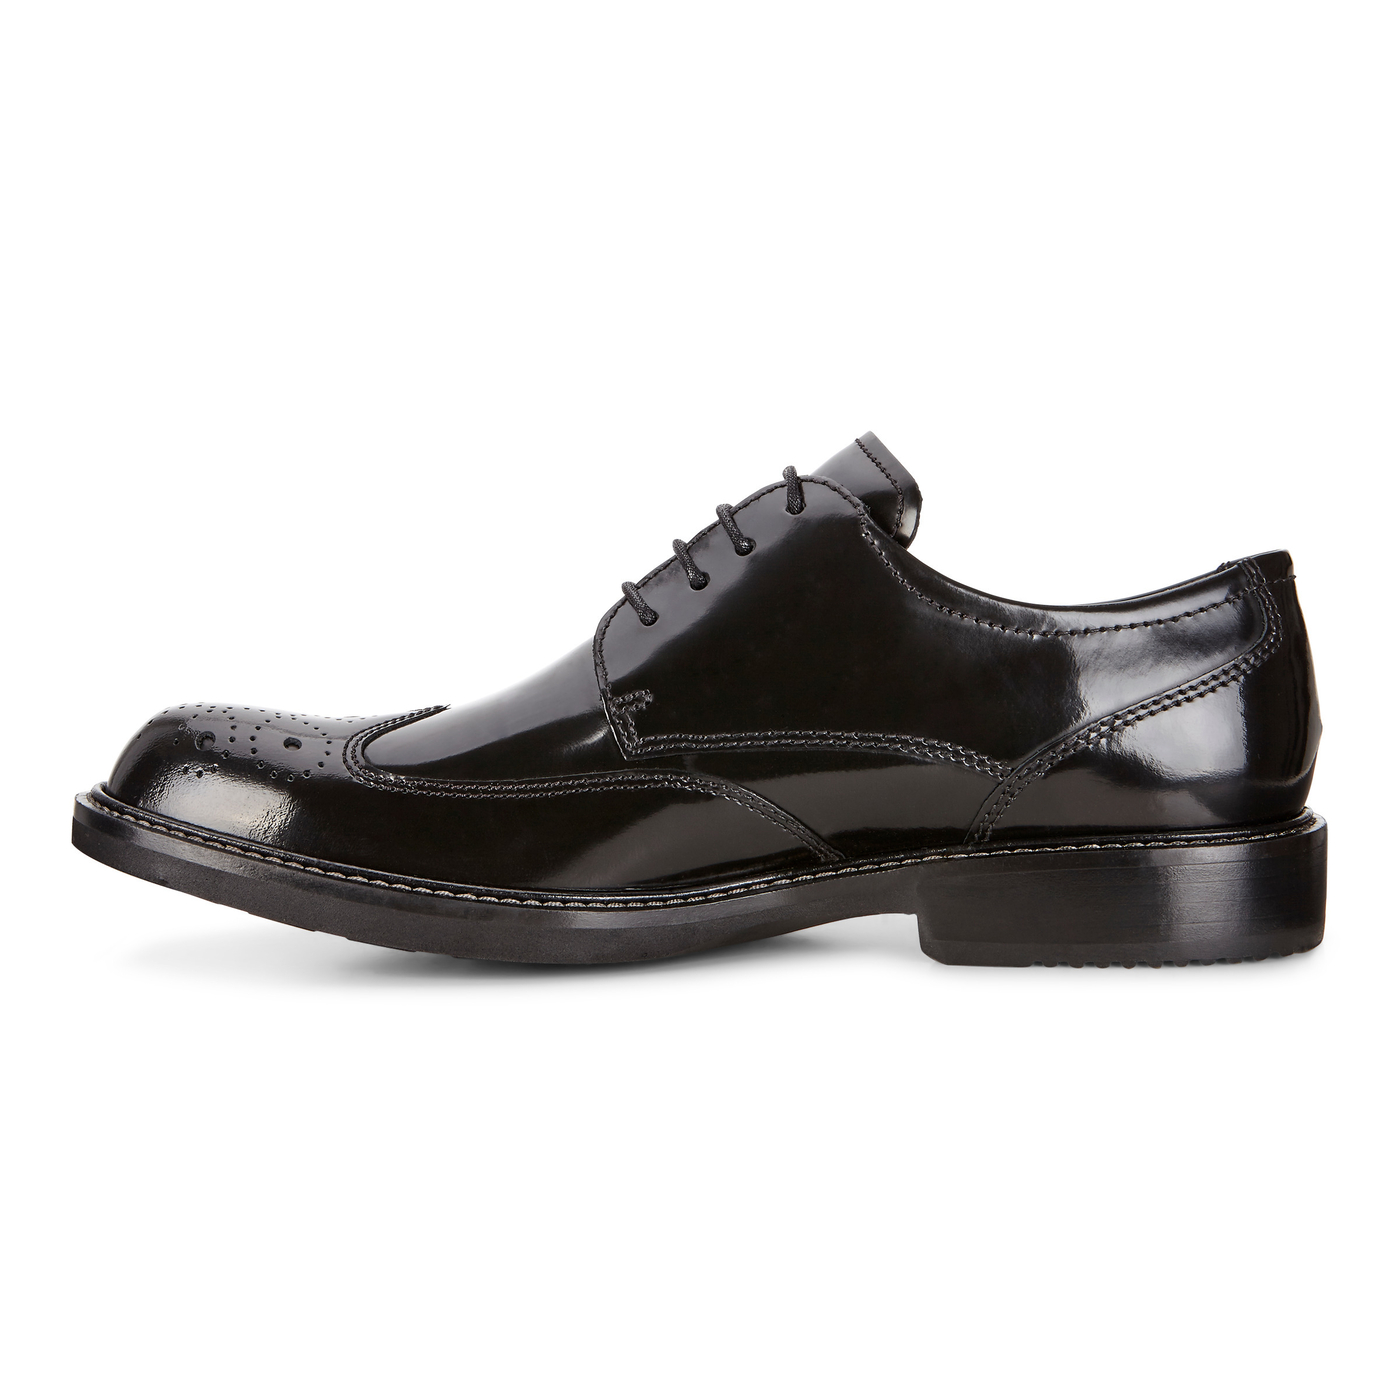 ECCO KENTON Brogue Tie